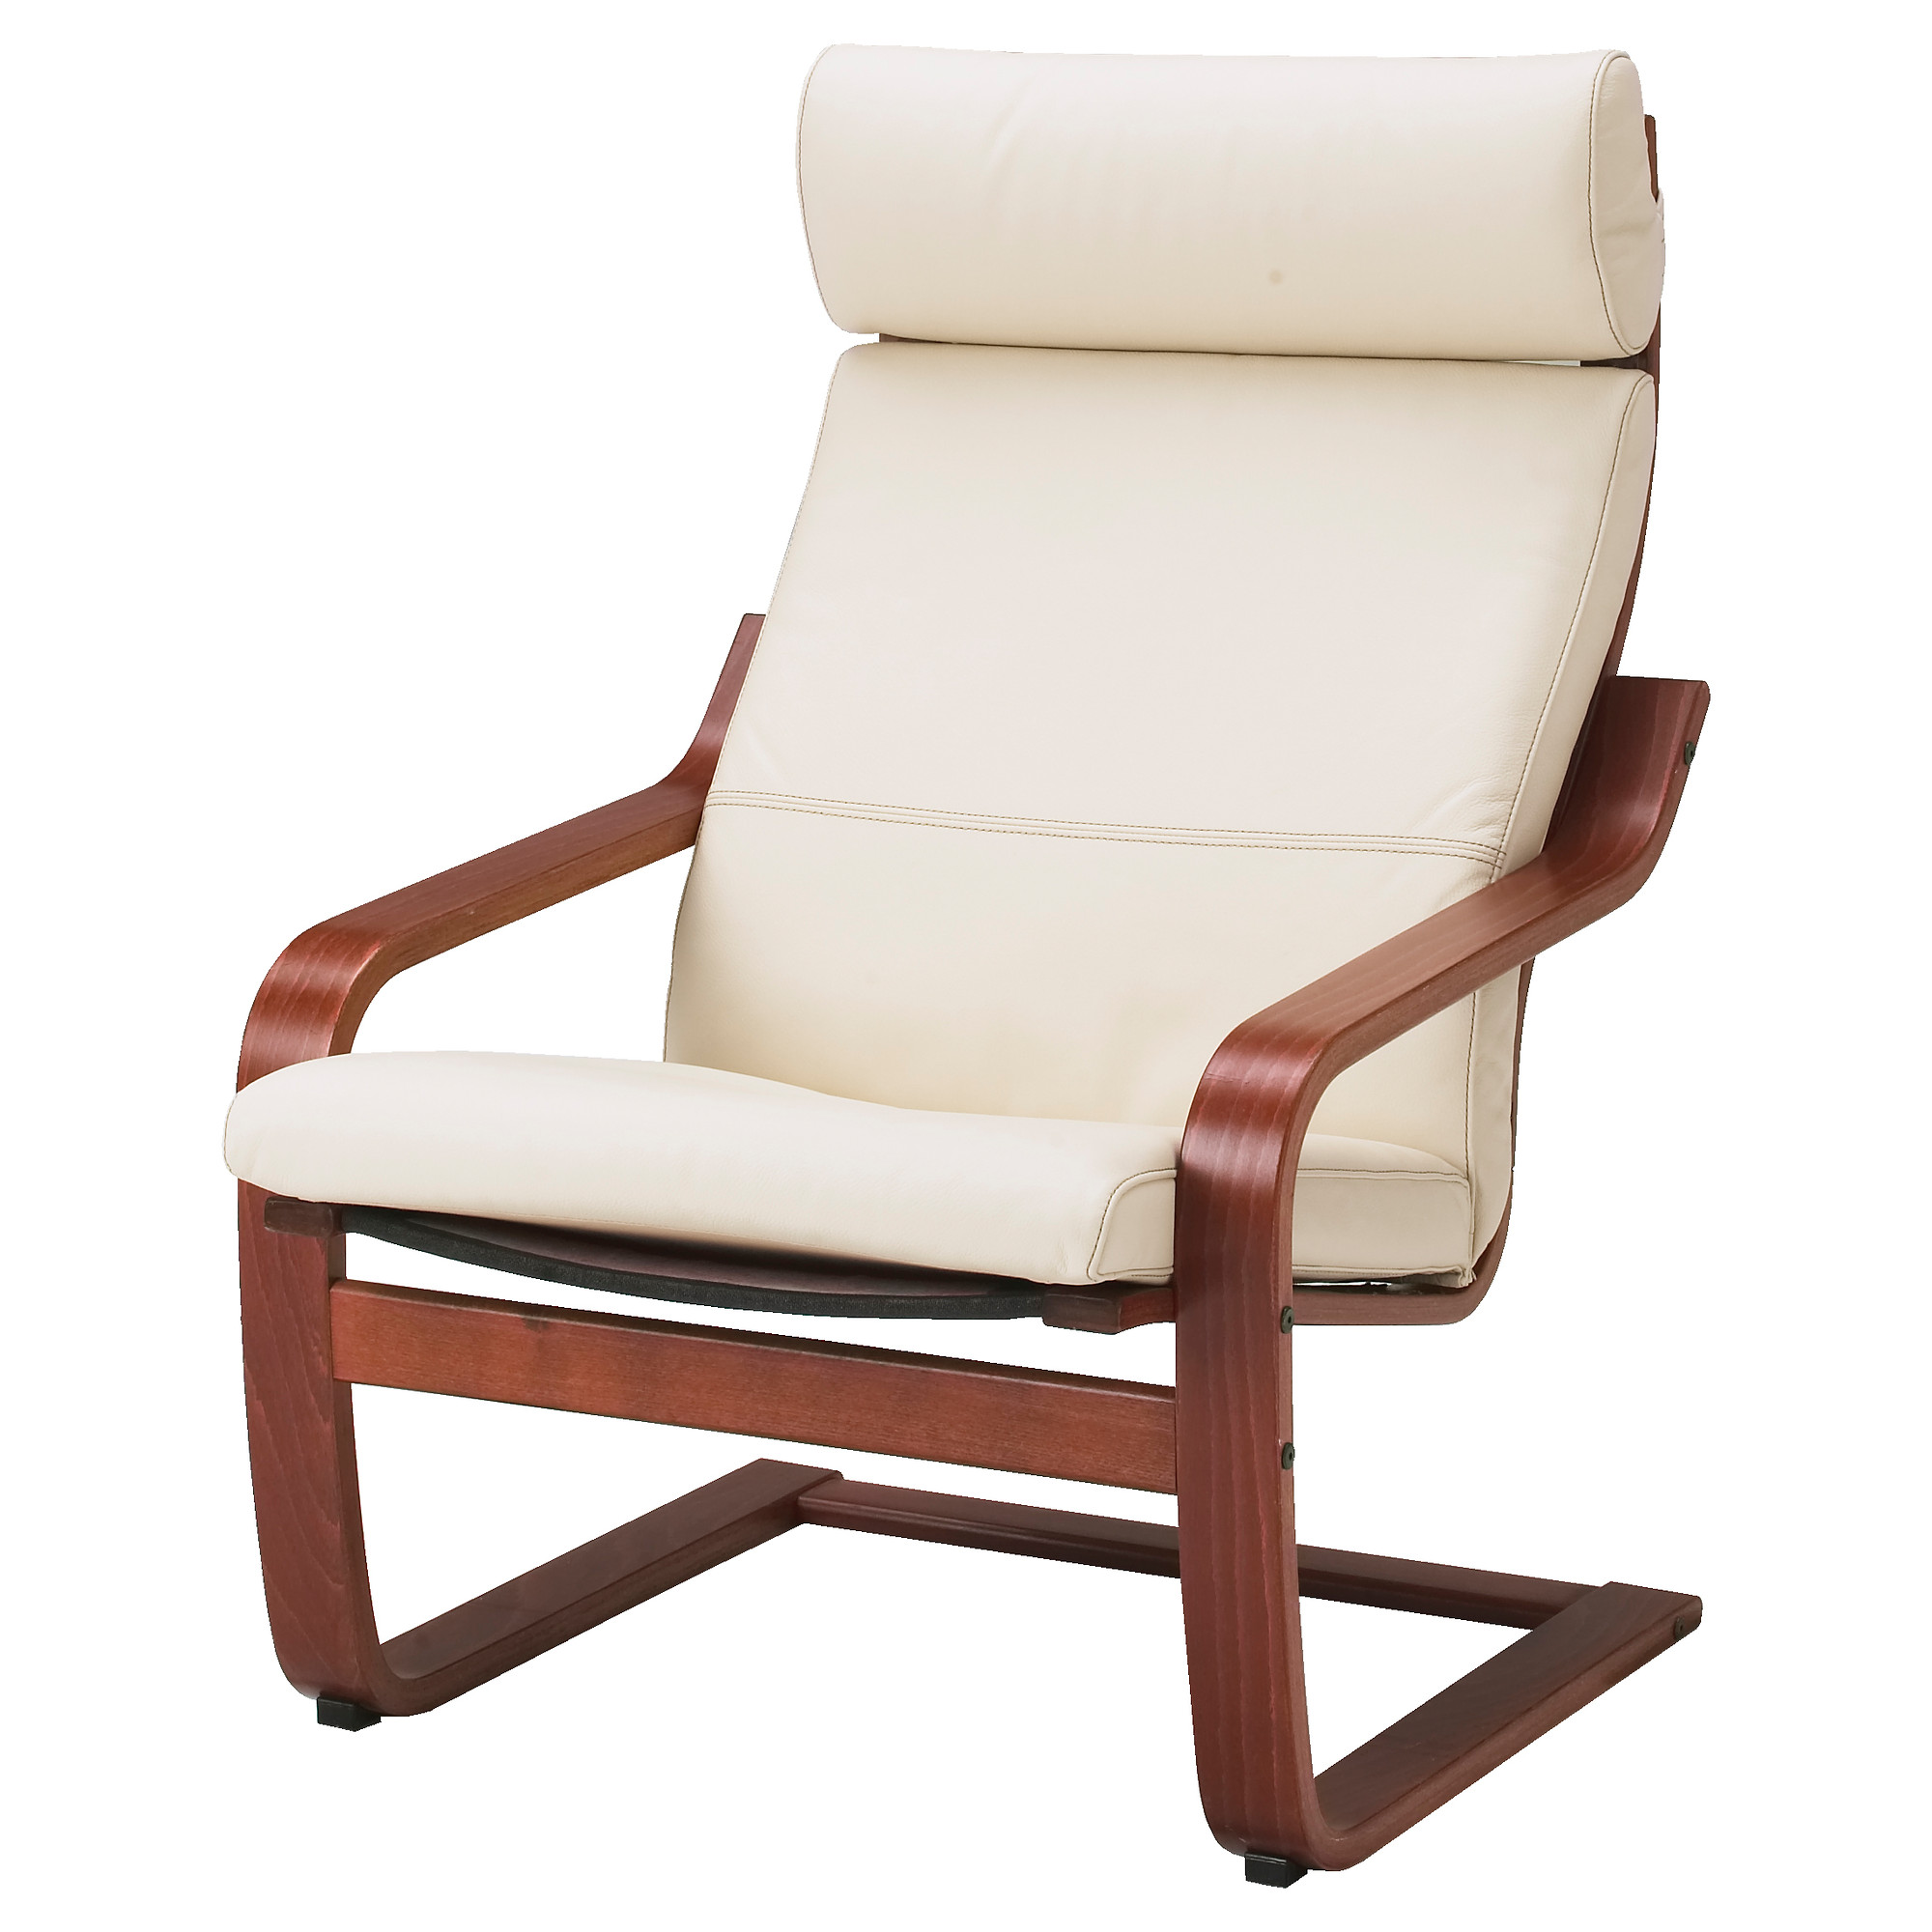 Poang chair living room - Po Ng Armchair Medium Brown Glose Robust Off White Width 26 3